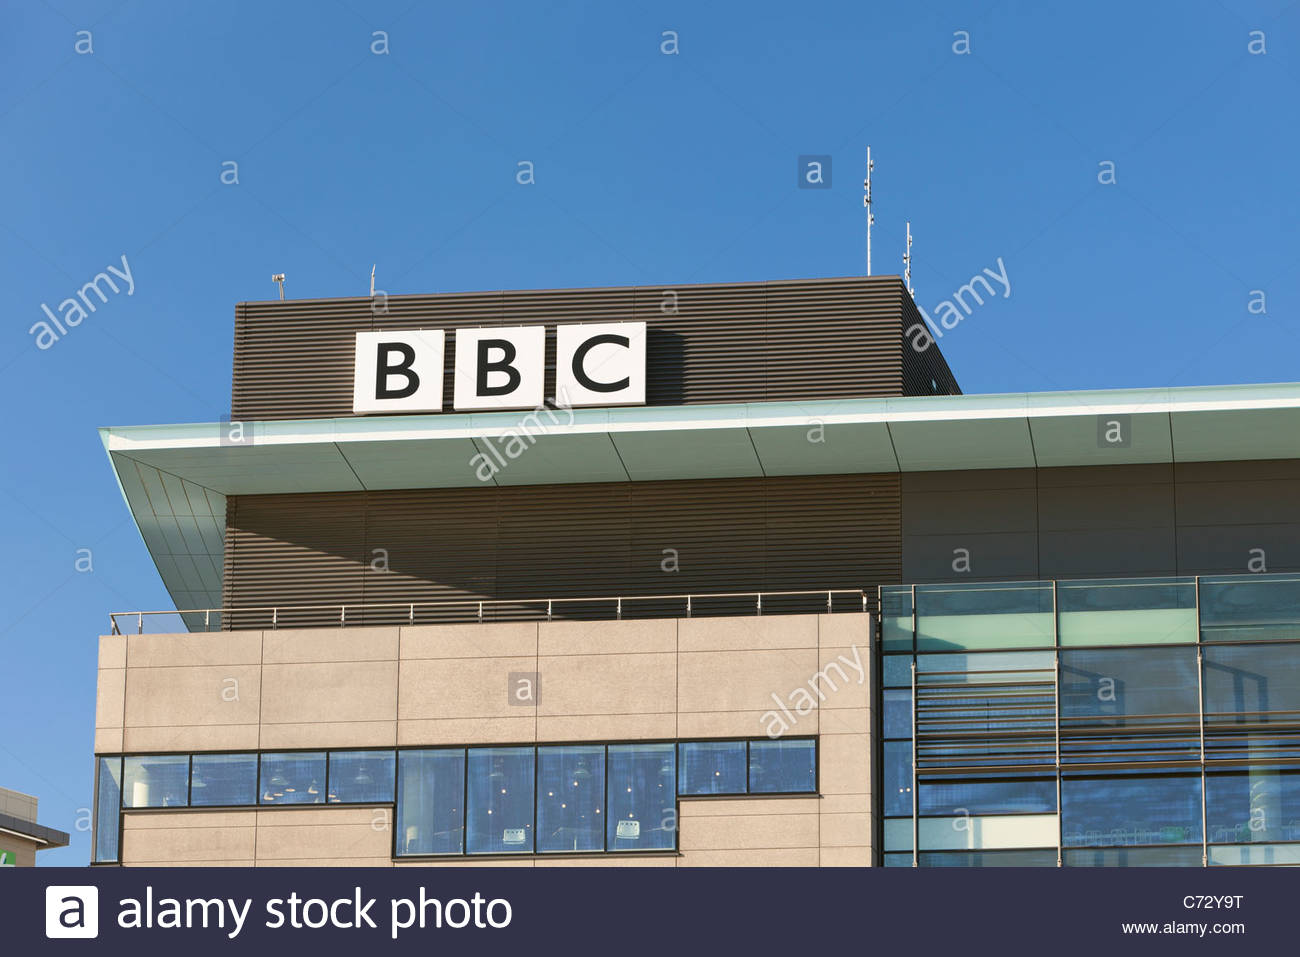 BBC sign at the BBC Manchester office at MediaCityUK, Salford, Manchester, England - Stock Image